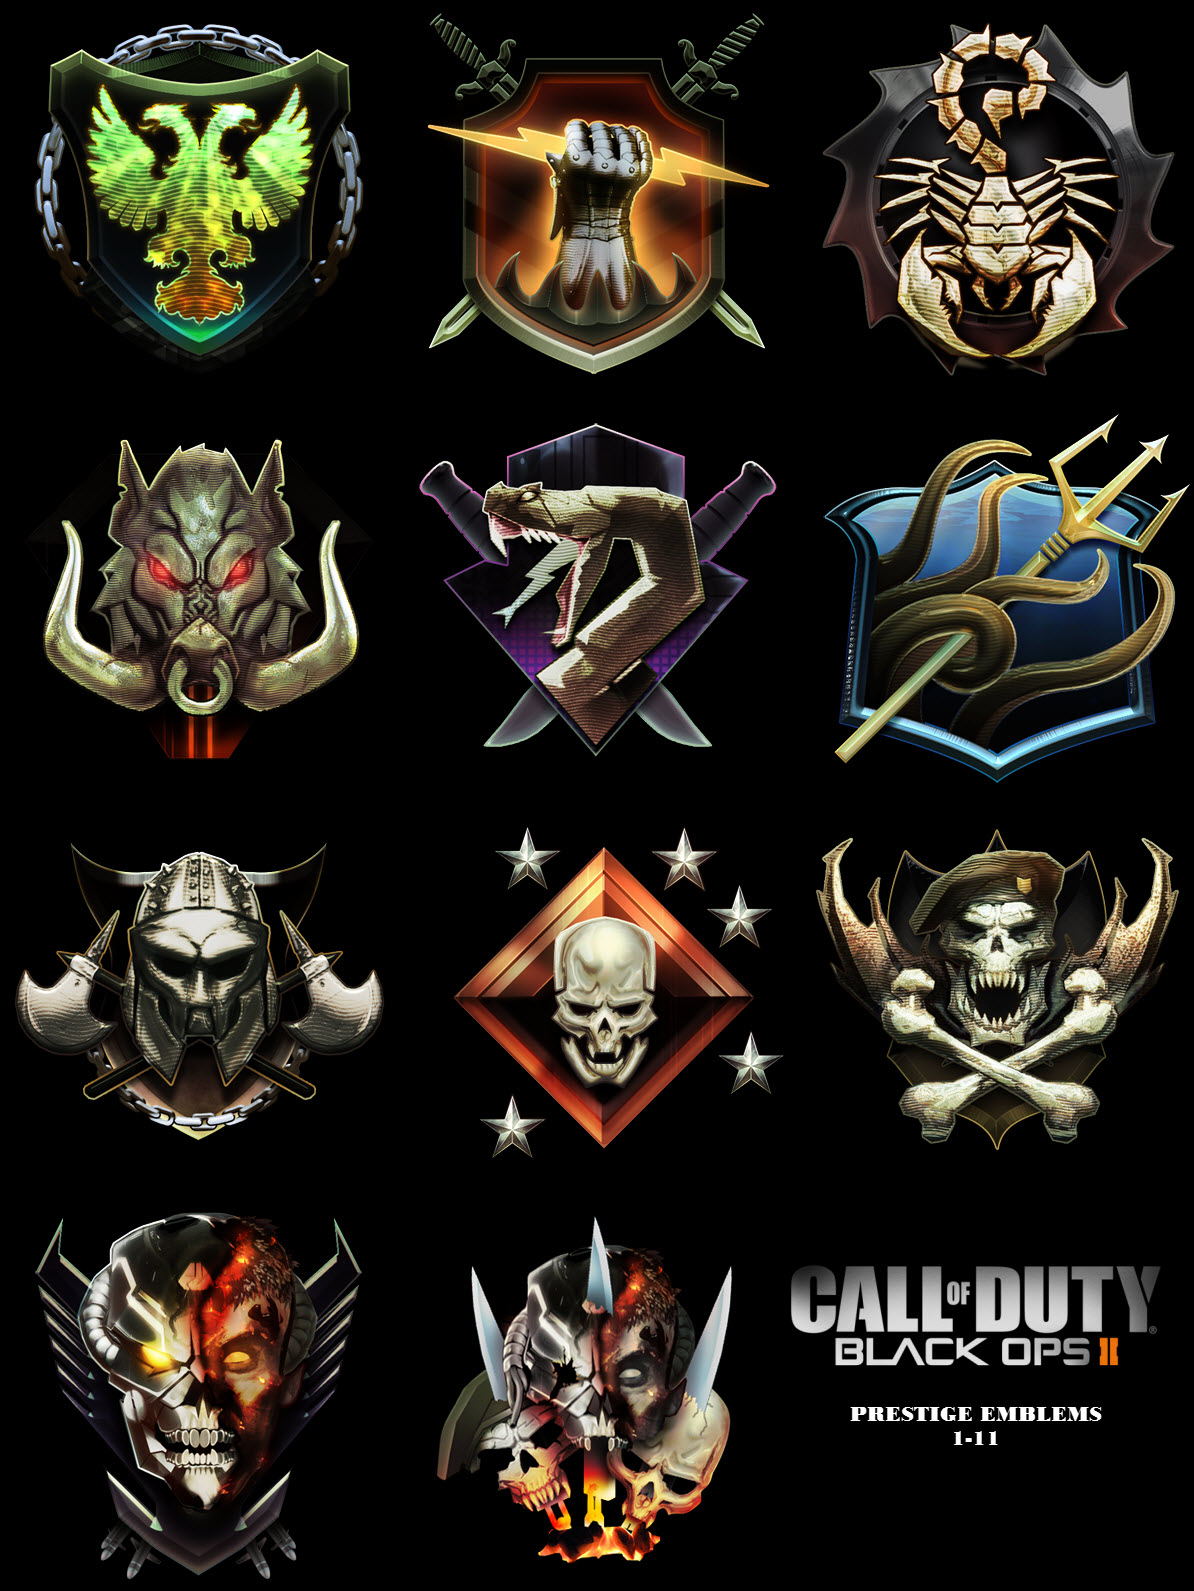 Call of duty black ops 2 prestige emblems high res gamechup call of duty black ops 2 prestige emblems high res gamechup video game news reviews features guides voltagebd